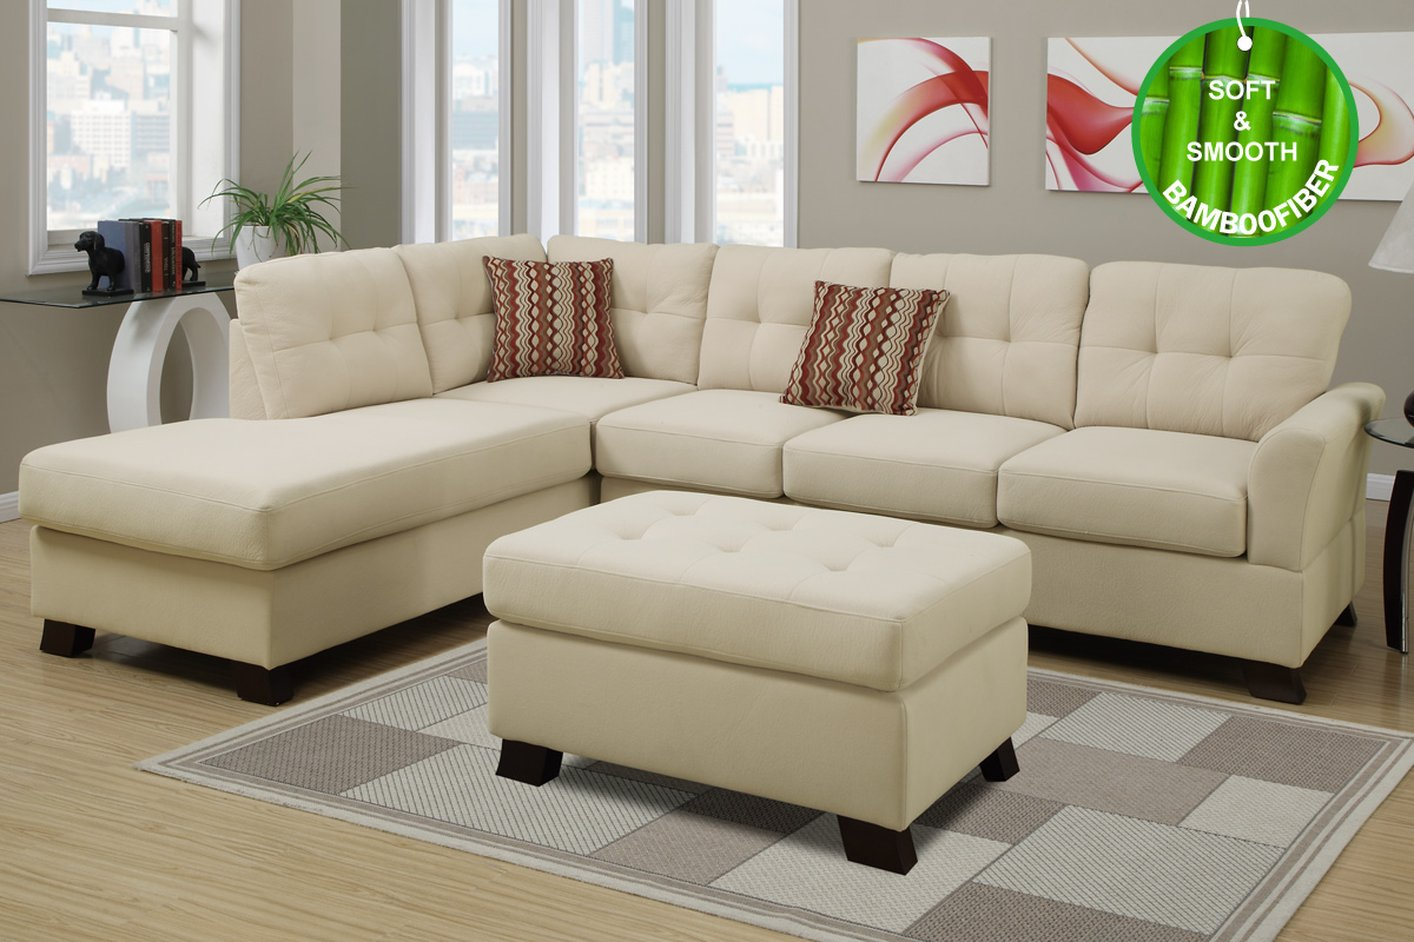 Bon Beige Fabric Sectional Sofa And Ottoman